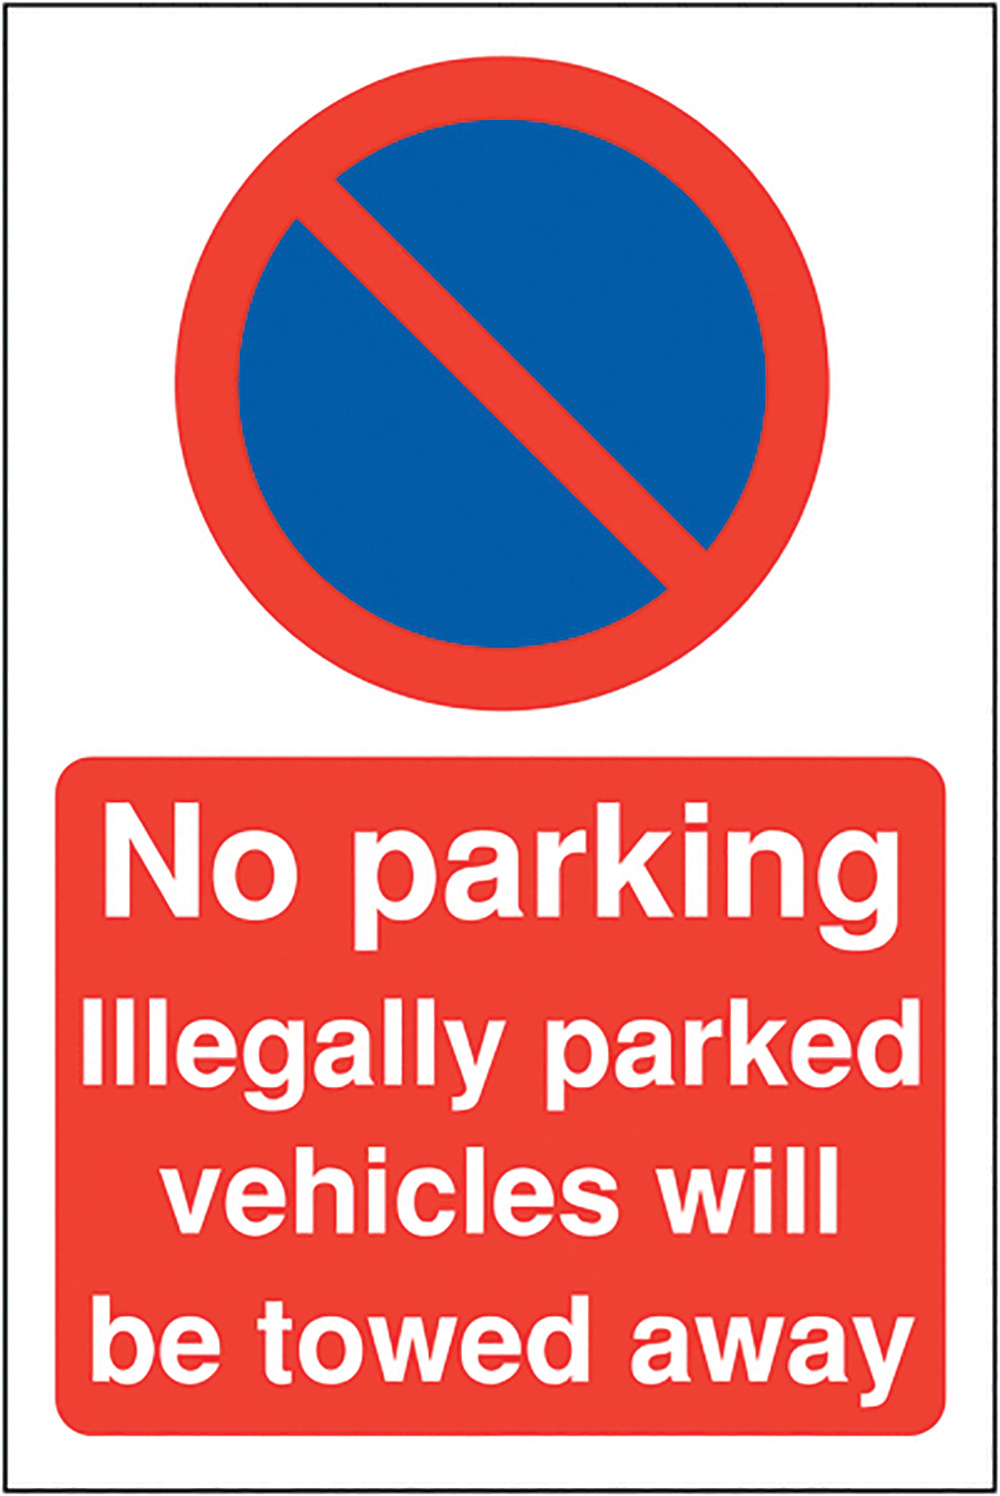 No parking Illegally parked 400x300mm 2mm Polycarbonate Safety Sign